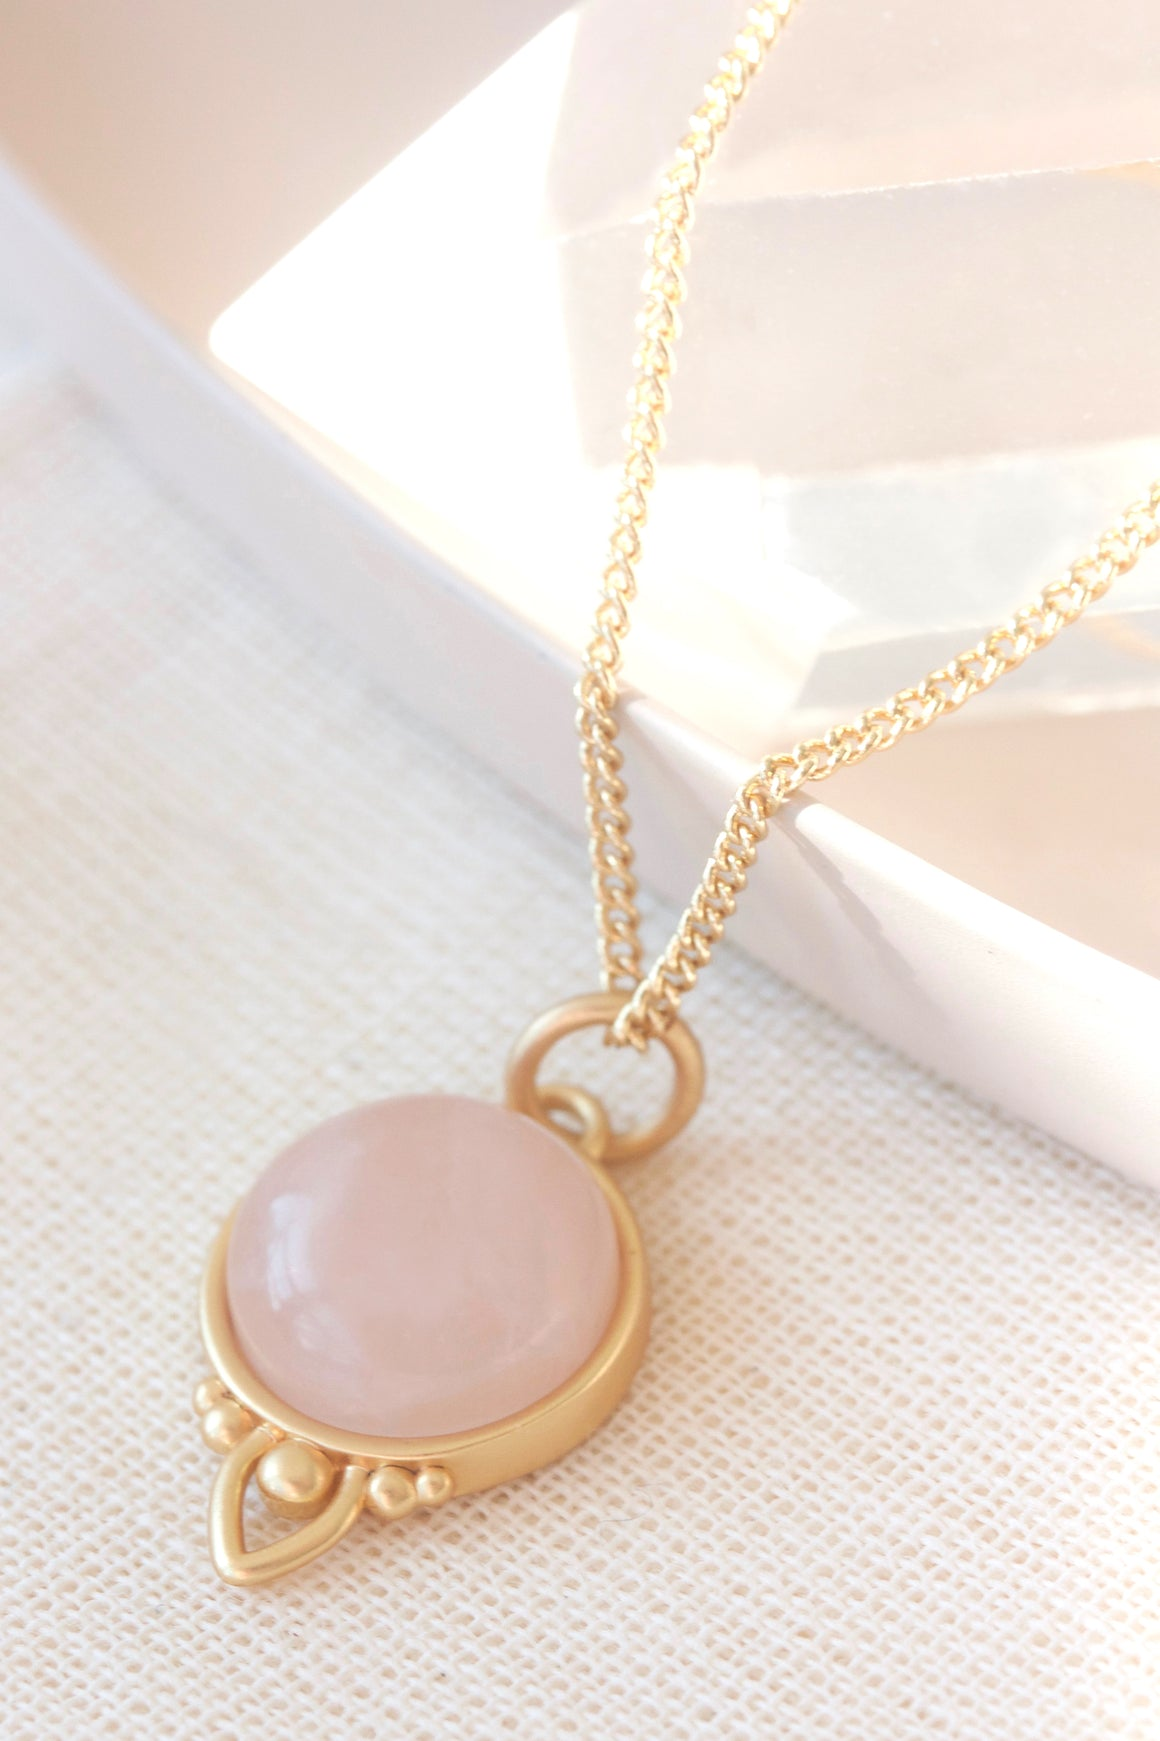 Gold Healing Gemstone Necklace - Rose Quartz